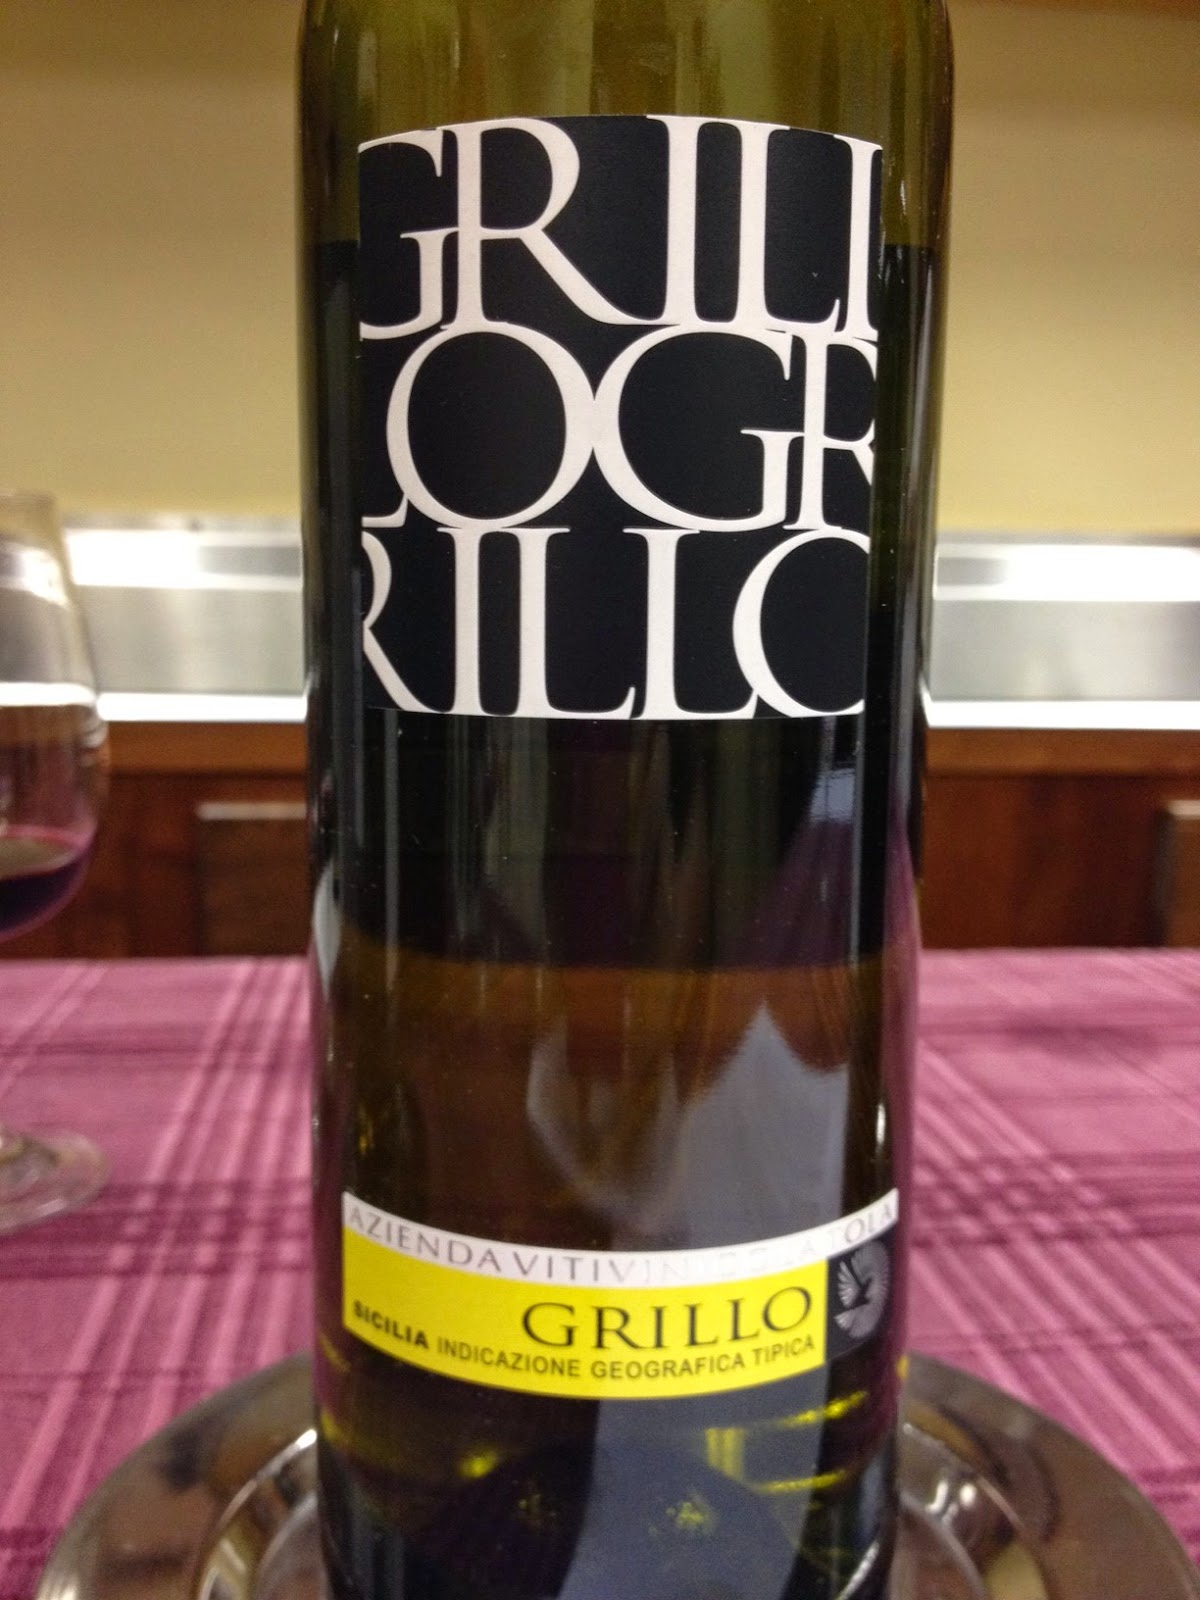 Tola winery in sicily with grillo grape